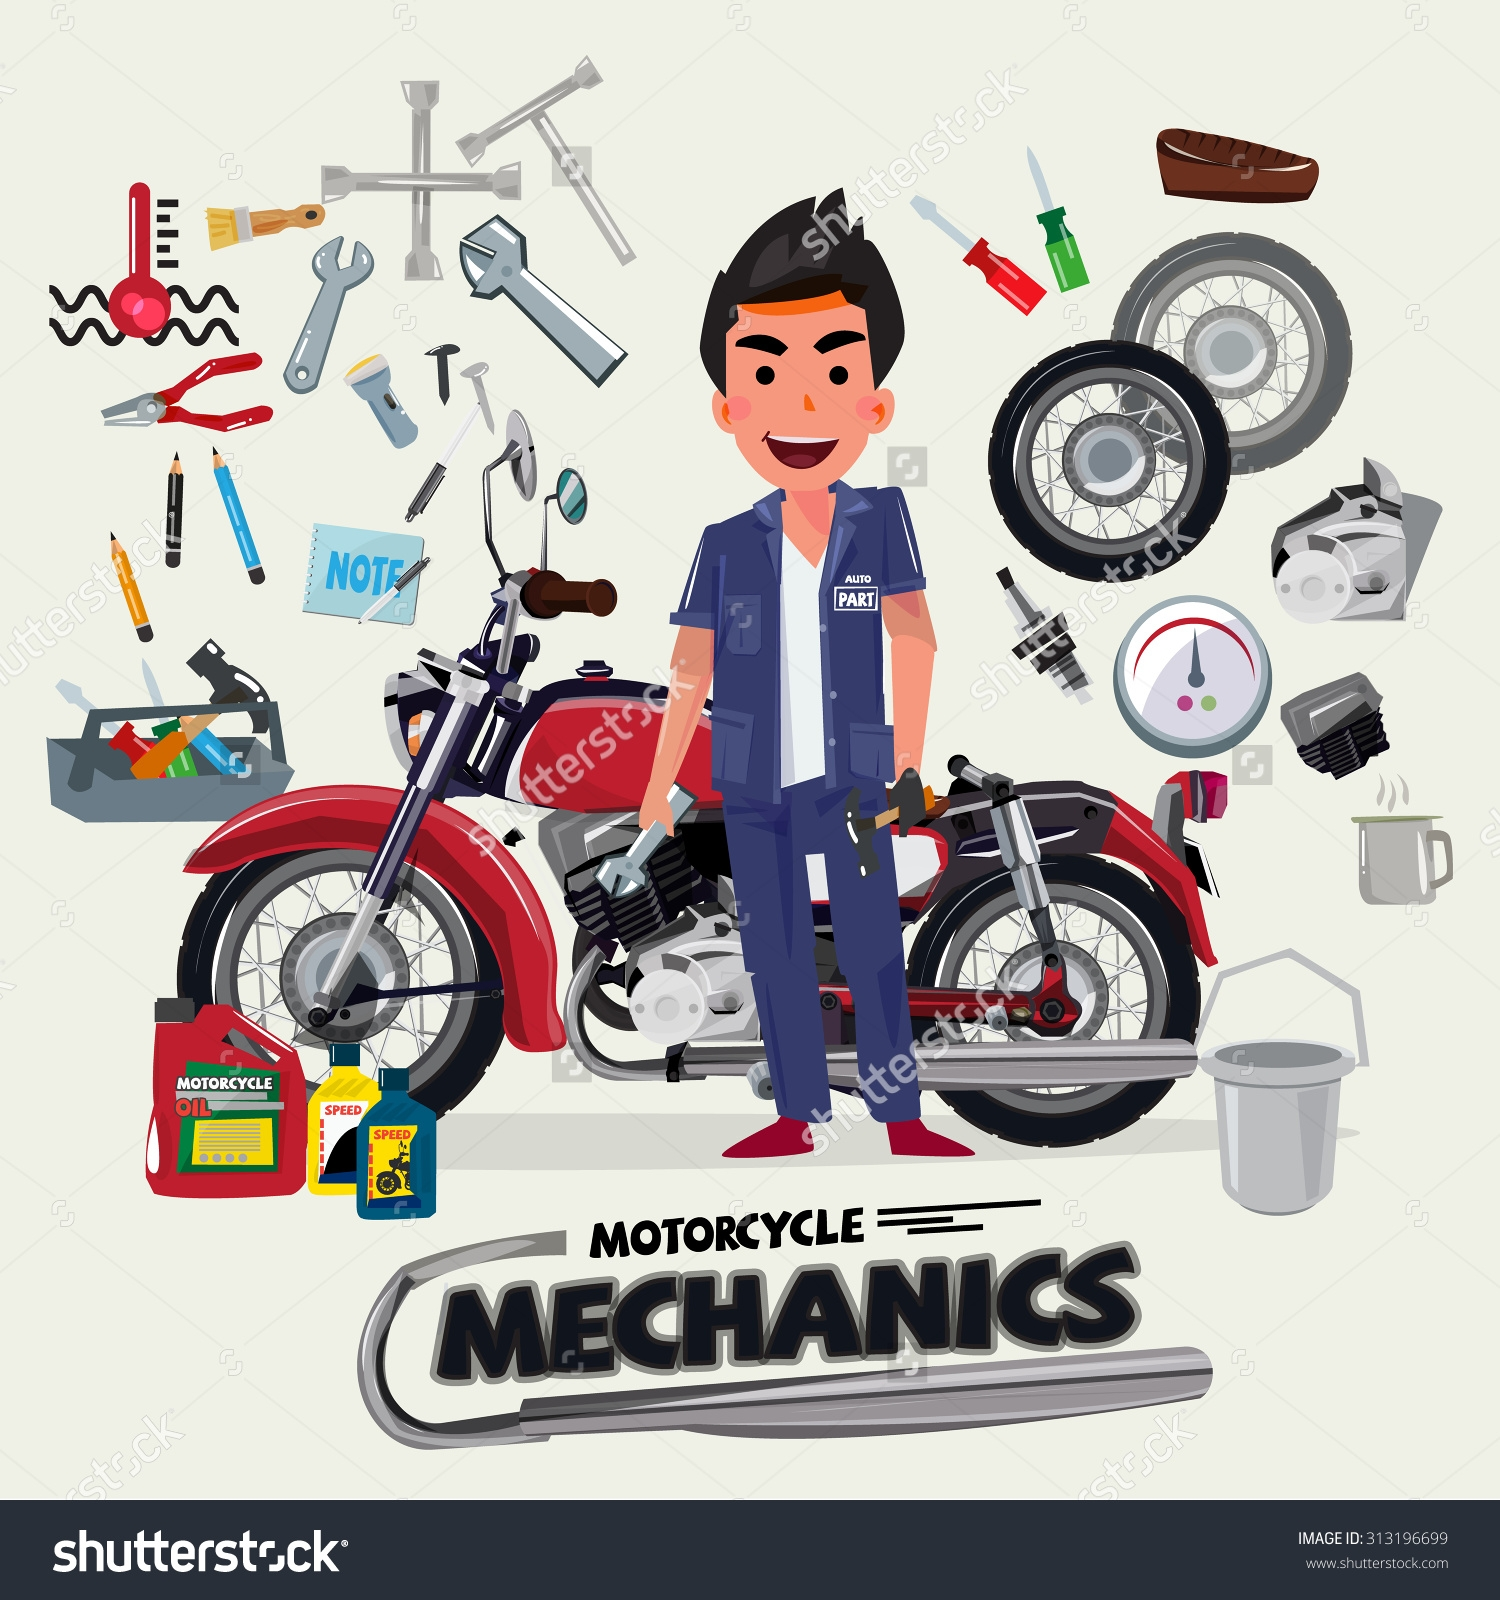 Free service cliparts download. Motorcycle clipart motorcycle repair